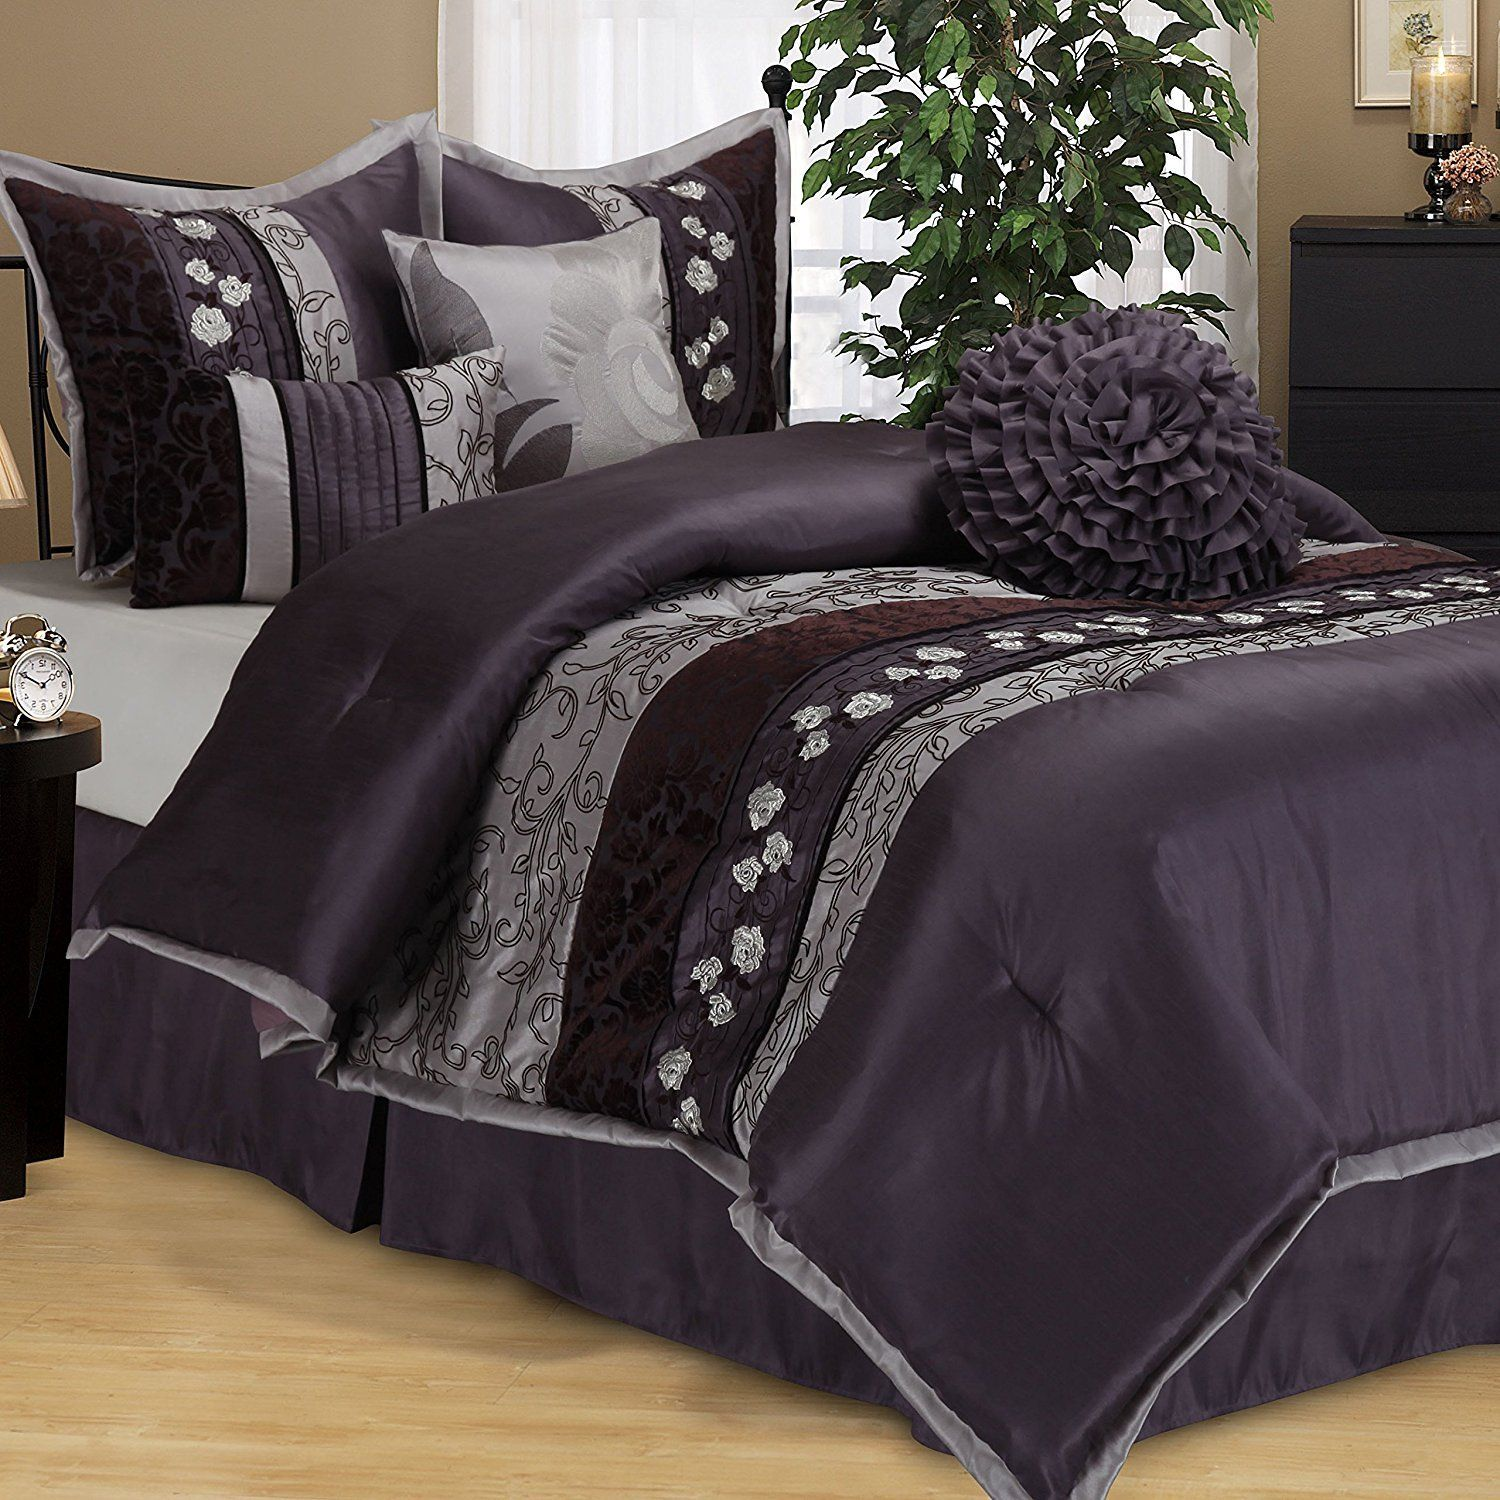 conjunction down ruched in with queen king size dark well and comforter beddings of solid xl satin grey purple plus twin full sets nursery together as alternative